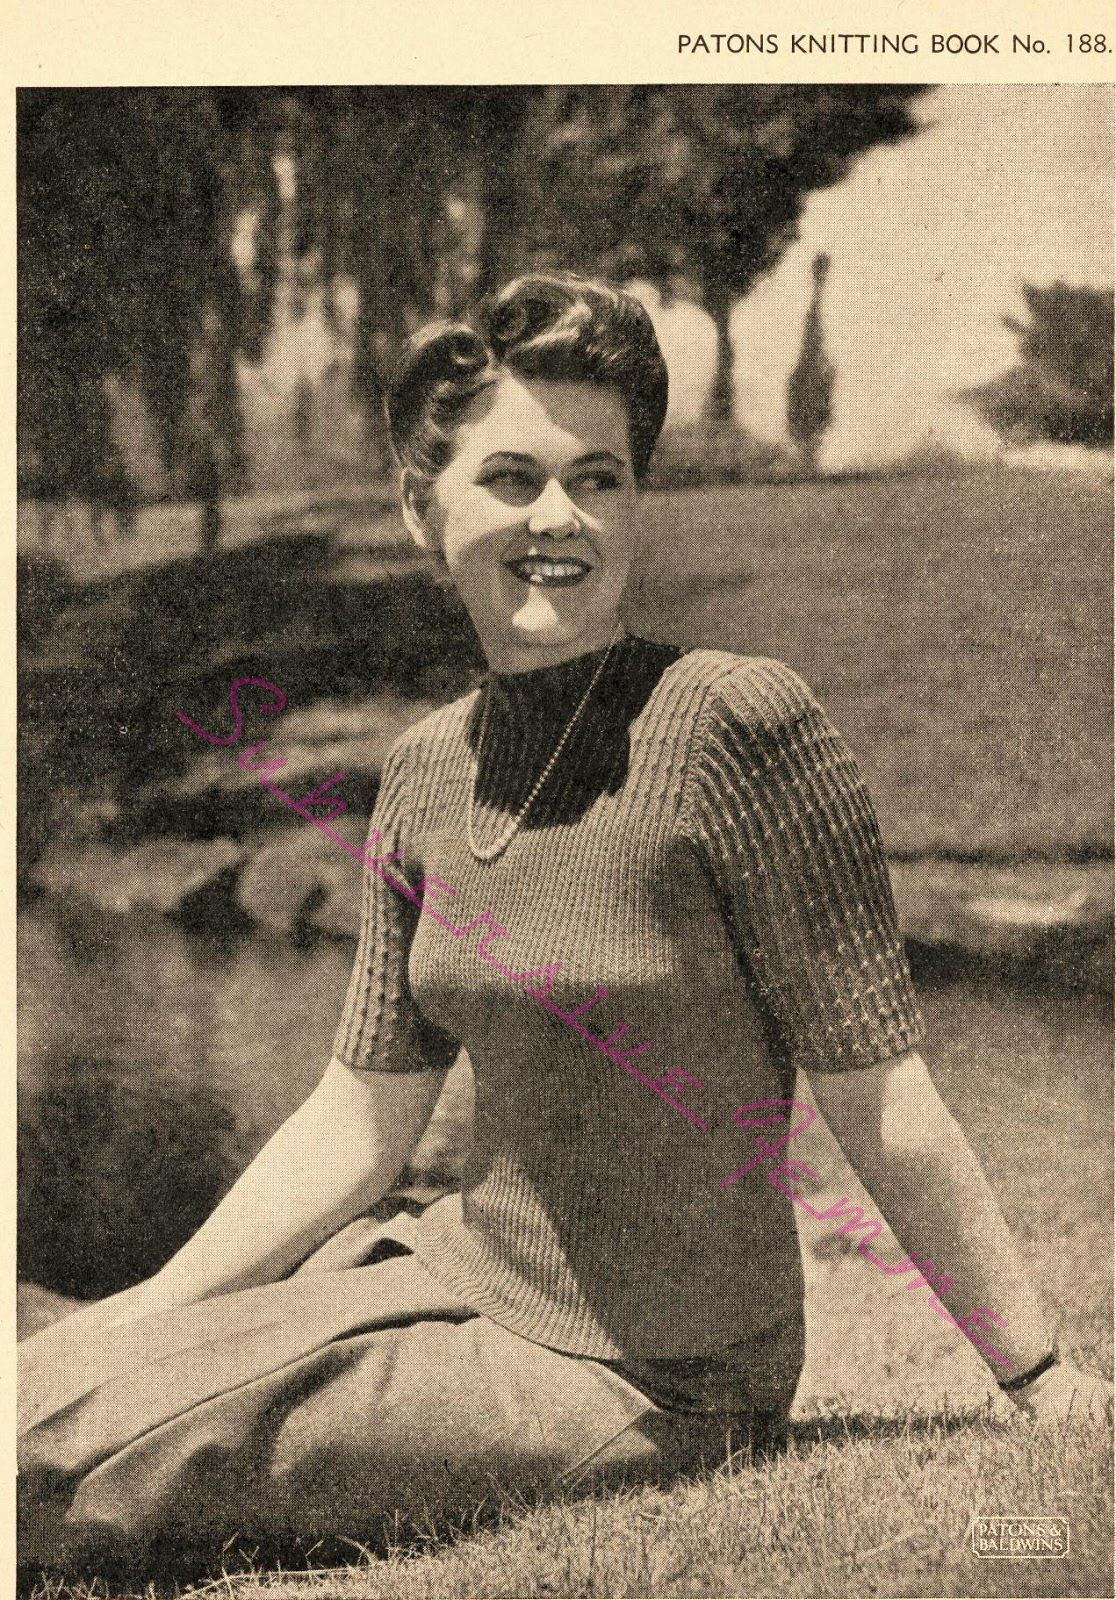 Todays free vintage knitting pattern comes from patons knitting todays free vintage knitting pattern comes from patons knitting book no188 circa late bankloansurffo Gallery